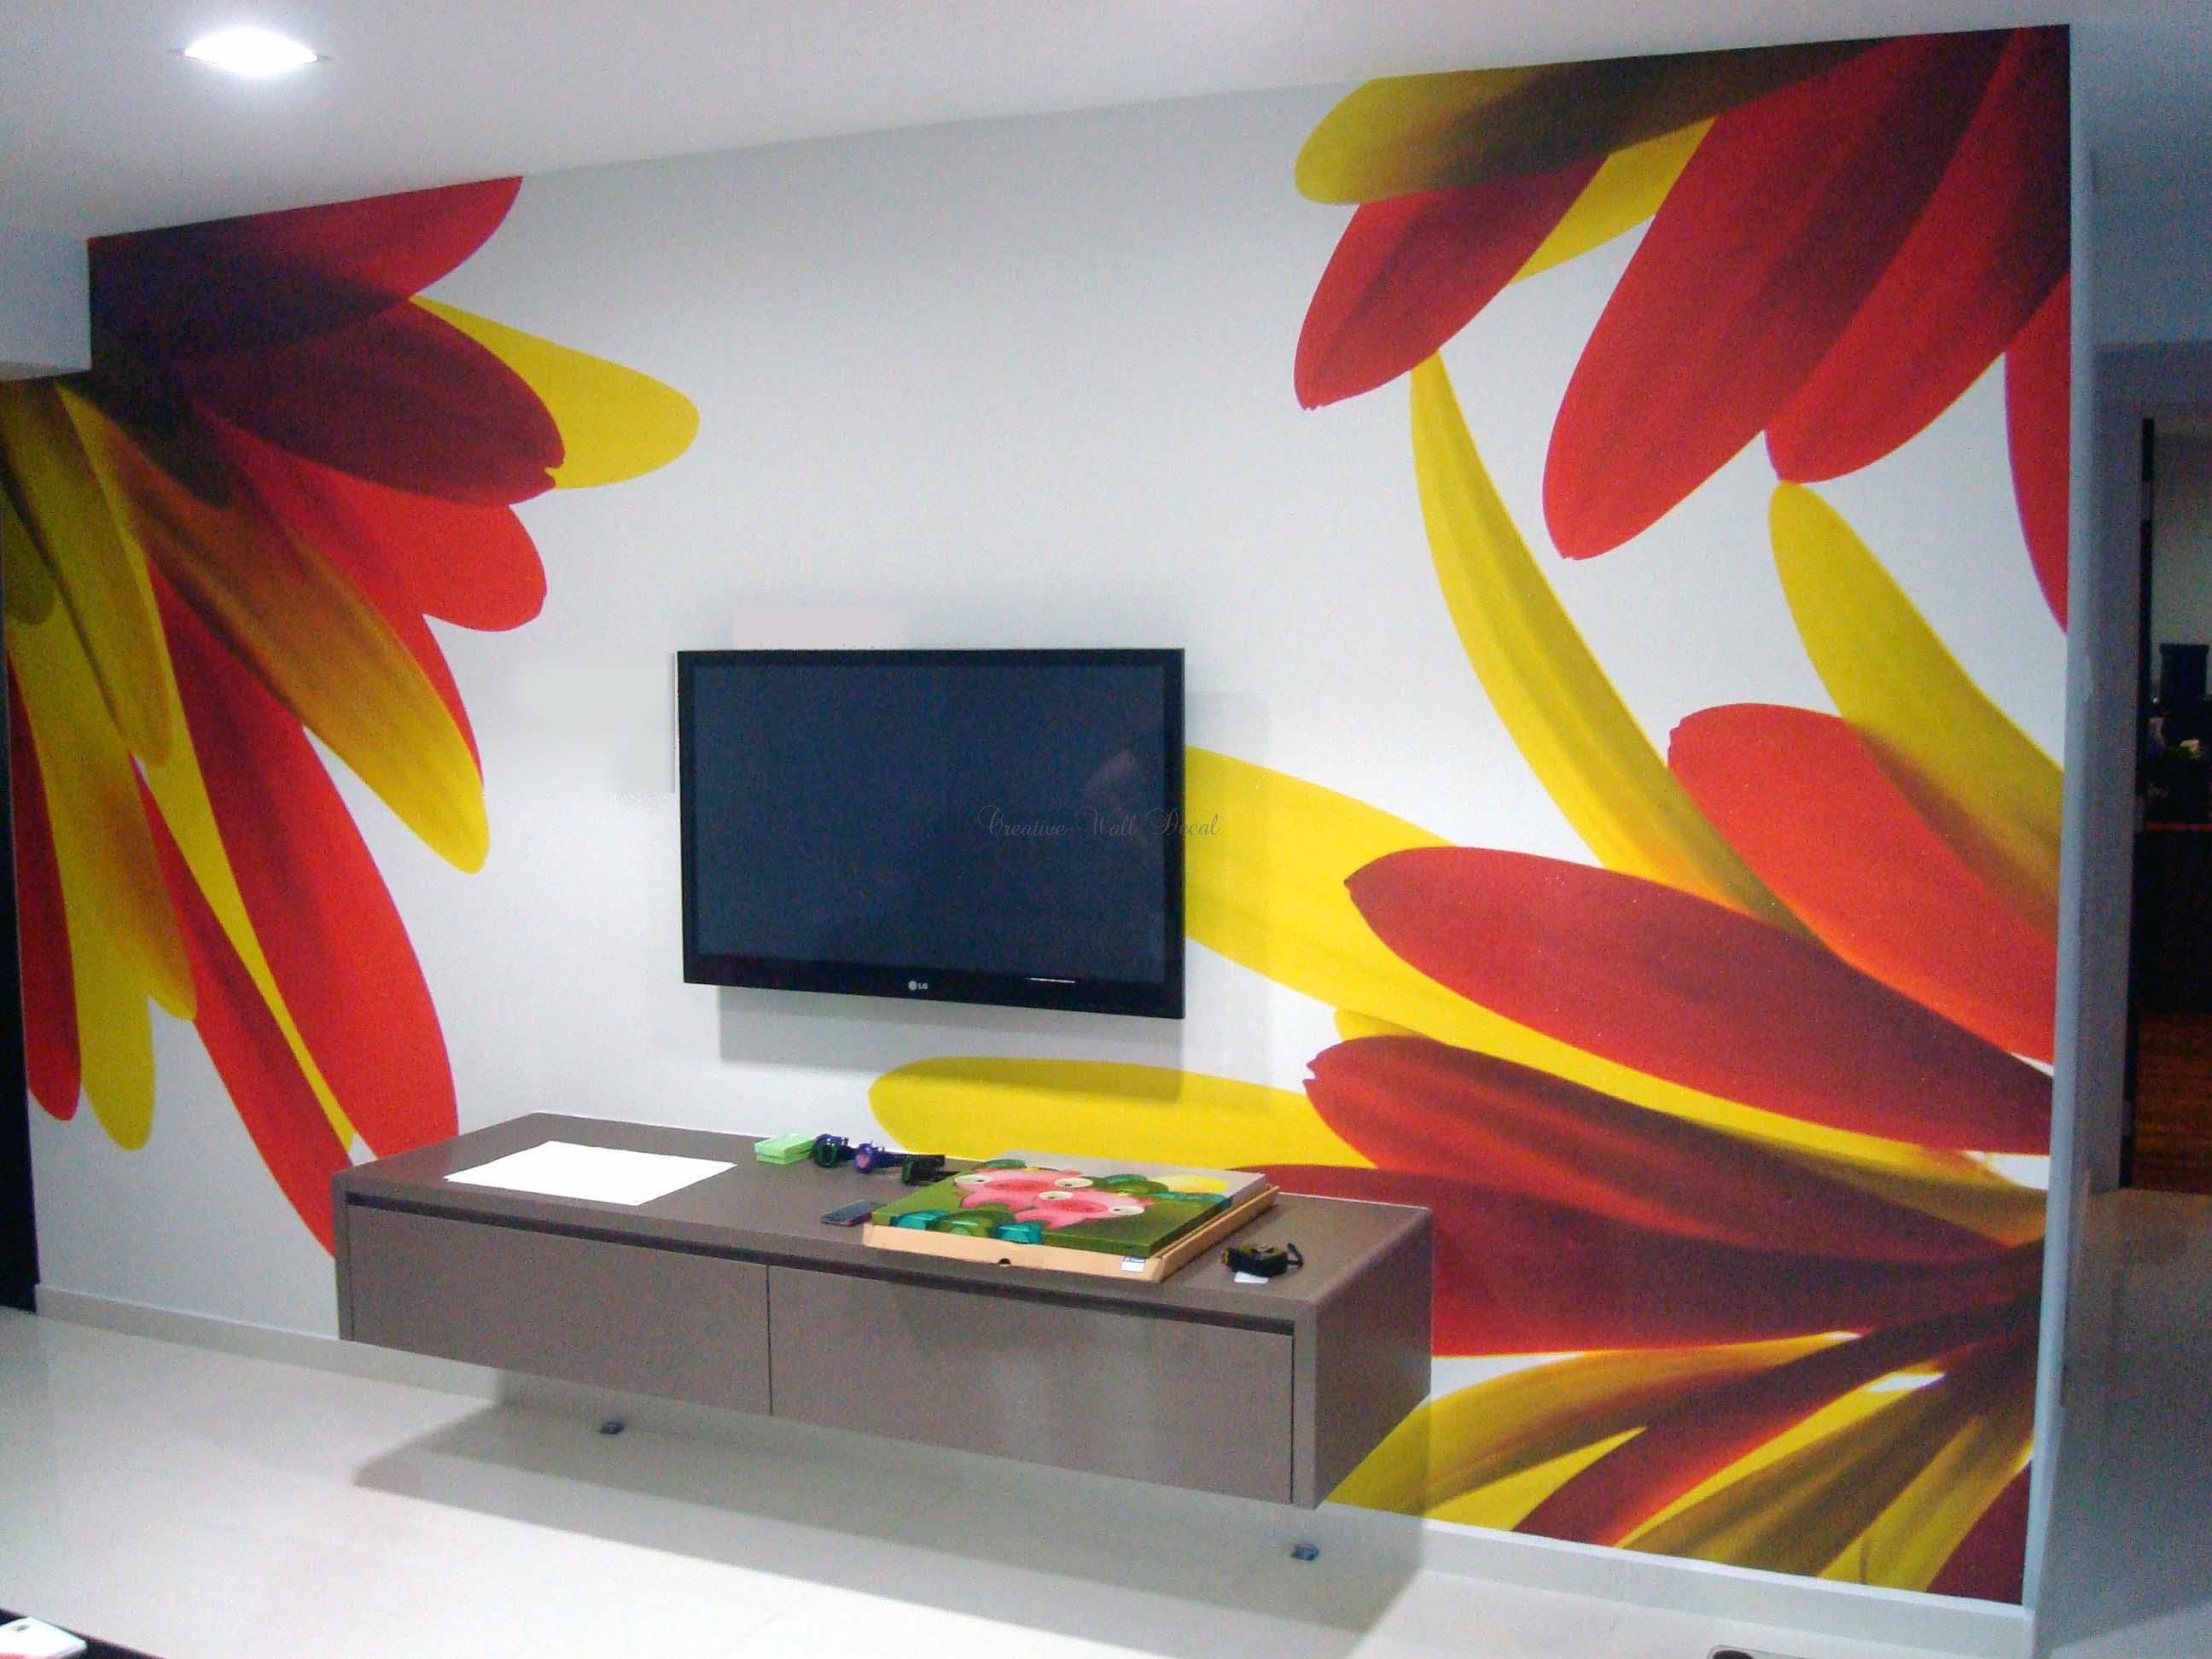 20 Well Favoured Wall Painting Ideas For Ideas And Inspiration Decoration Interior Home Wall Painting Diy Wall Painting Creative Wall Painting